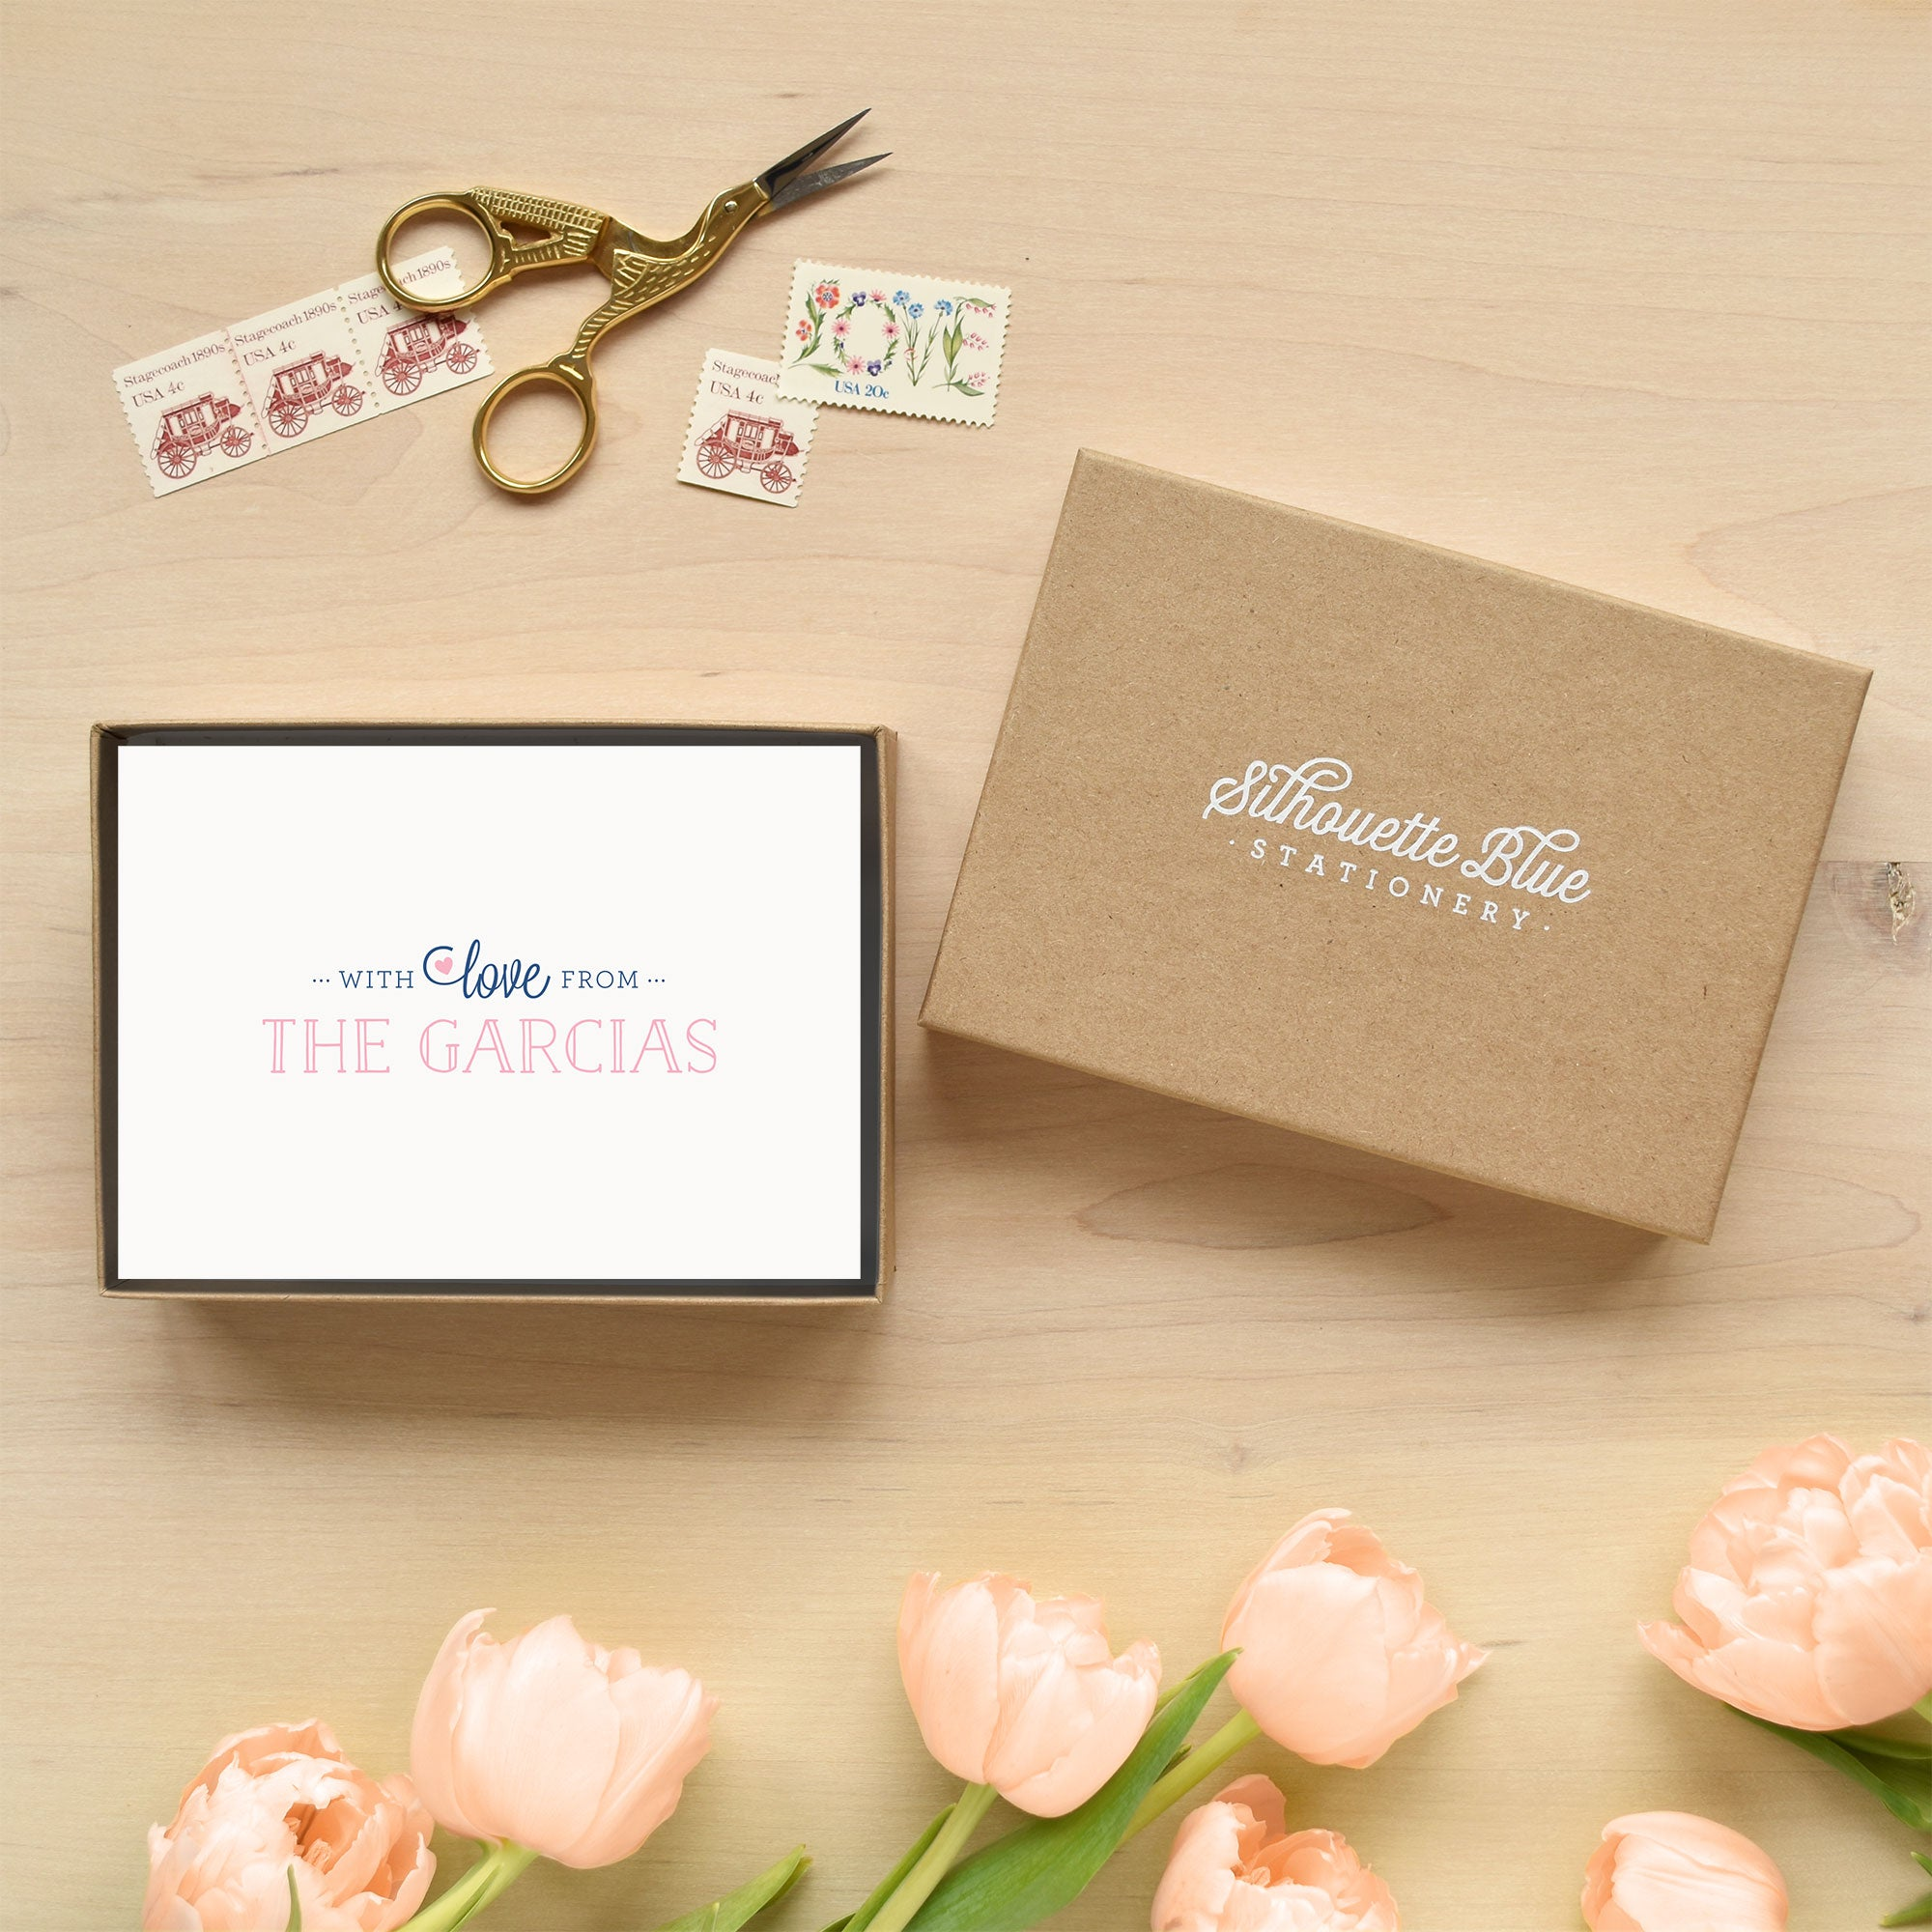 With Love Personalized Stationery